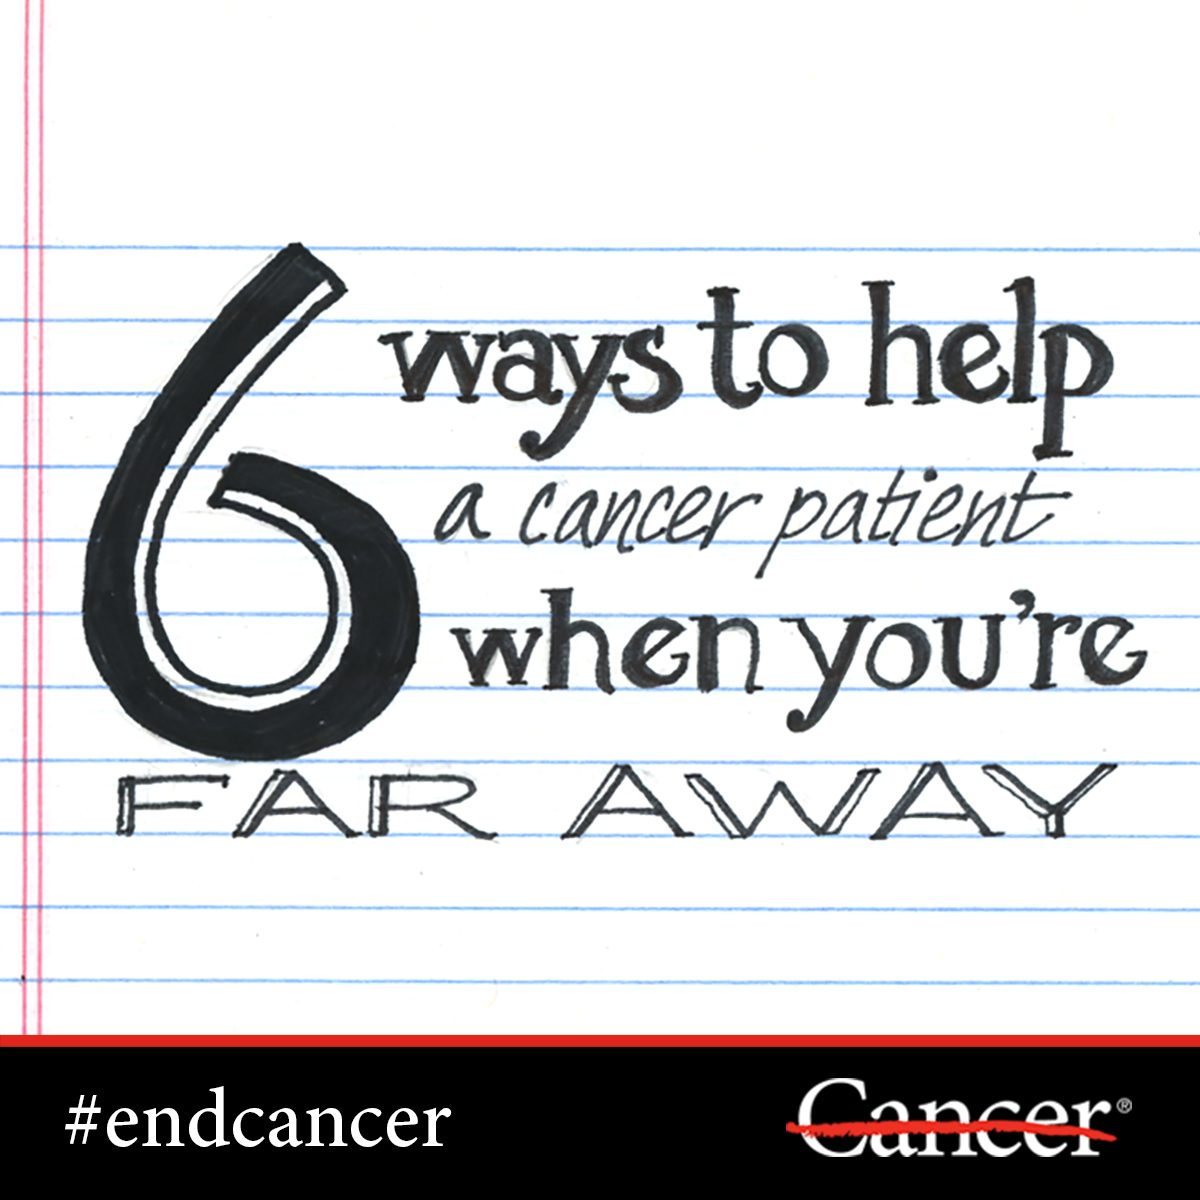 Learn how you can help a cancer patient or caregiver when you're far away.